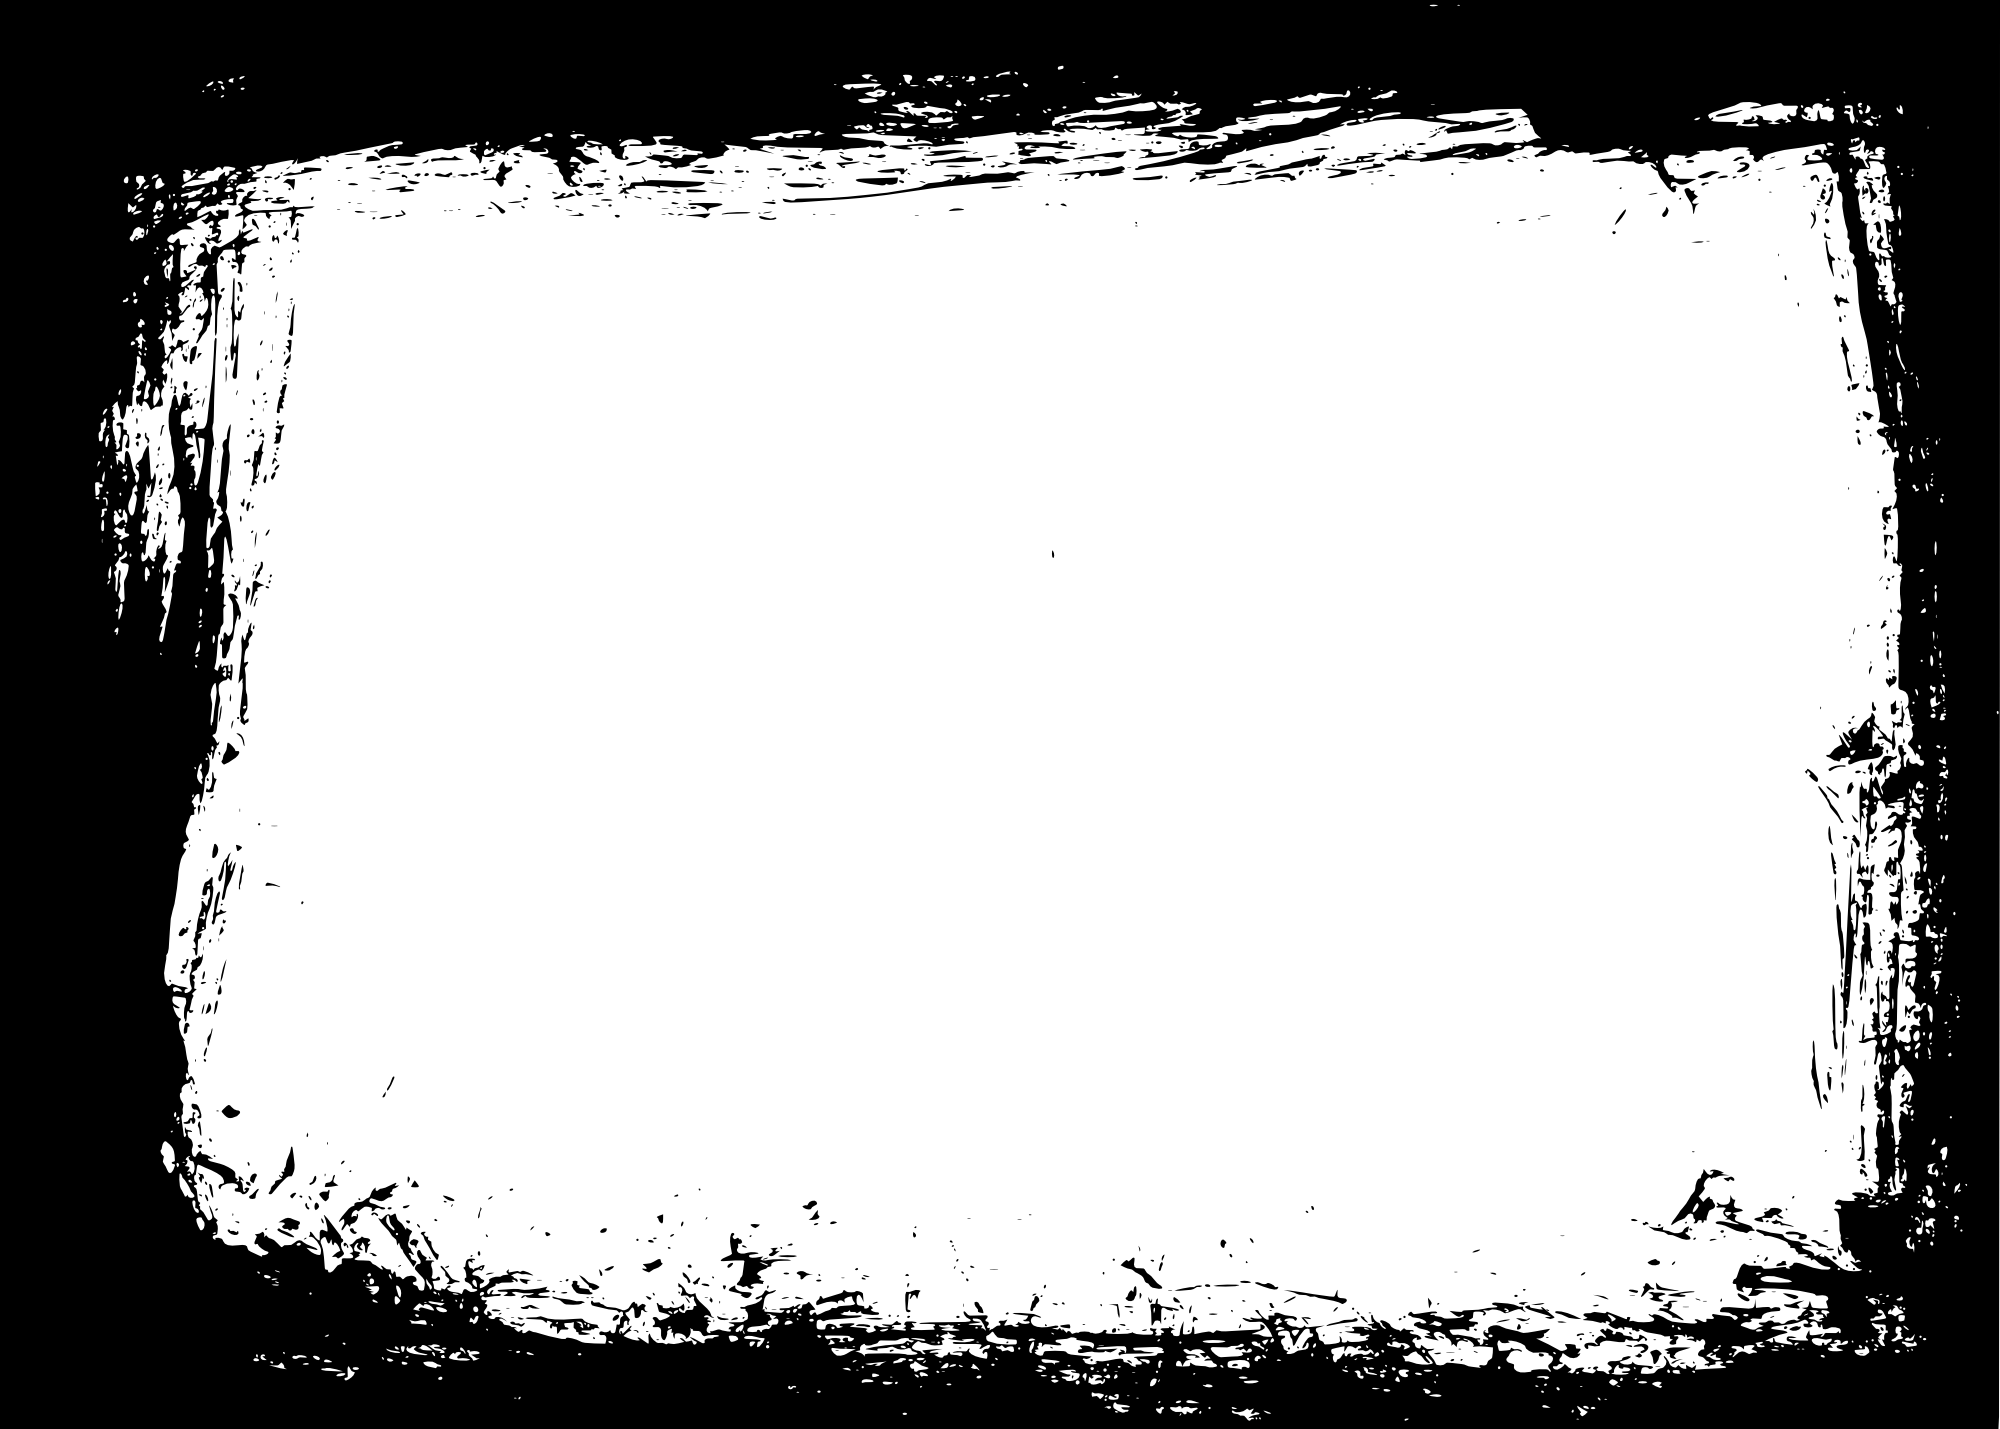 rectangle transparent vol. Grunge frame png